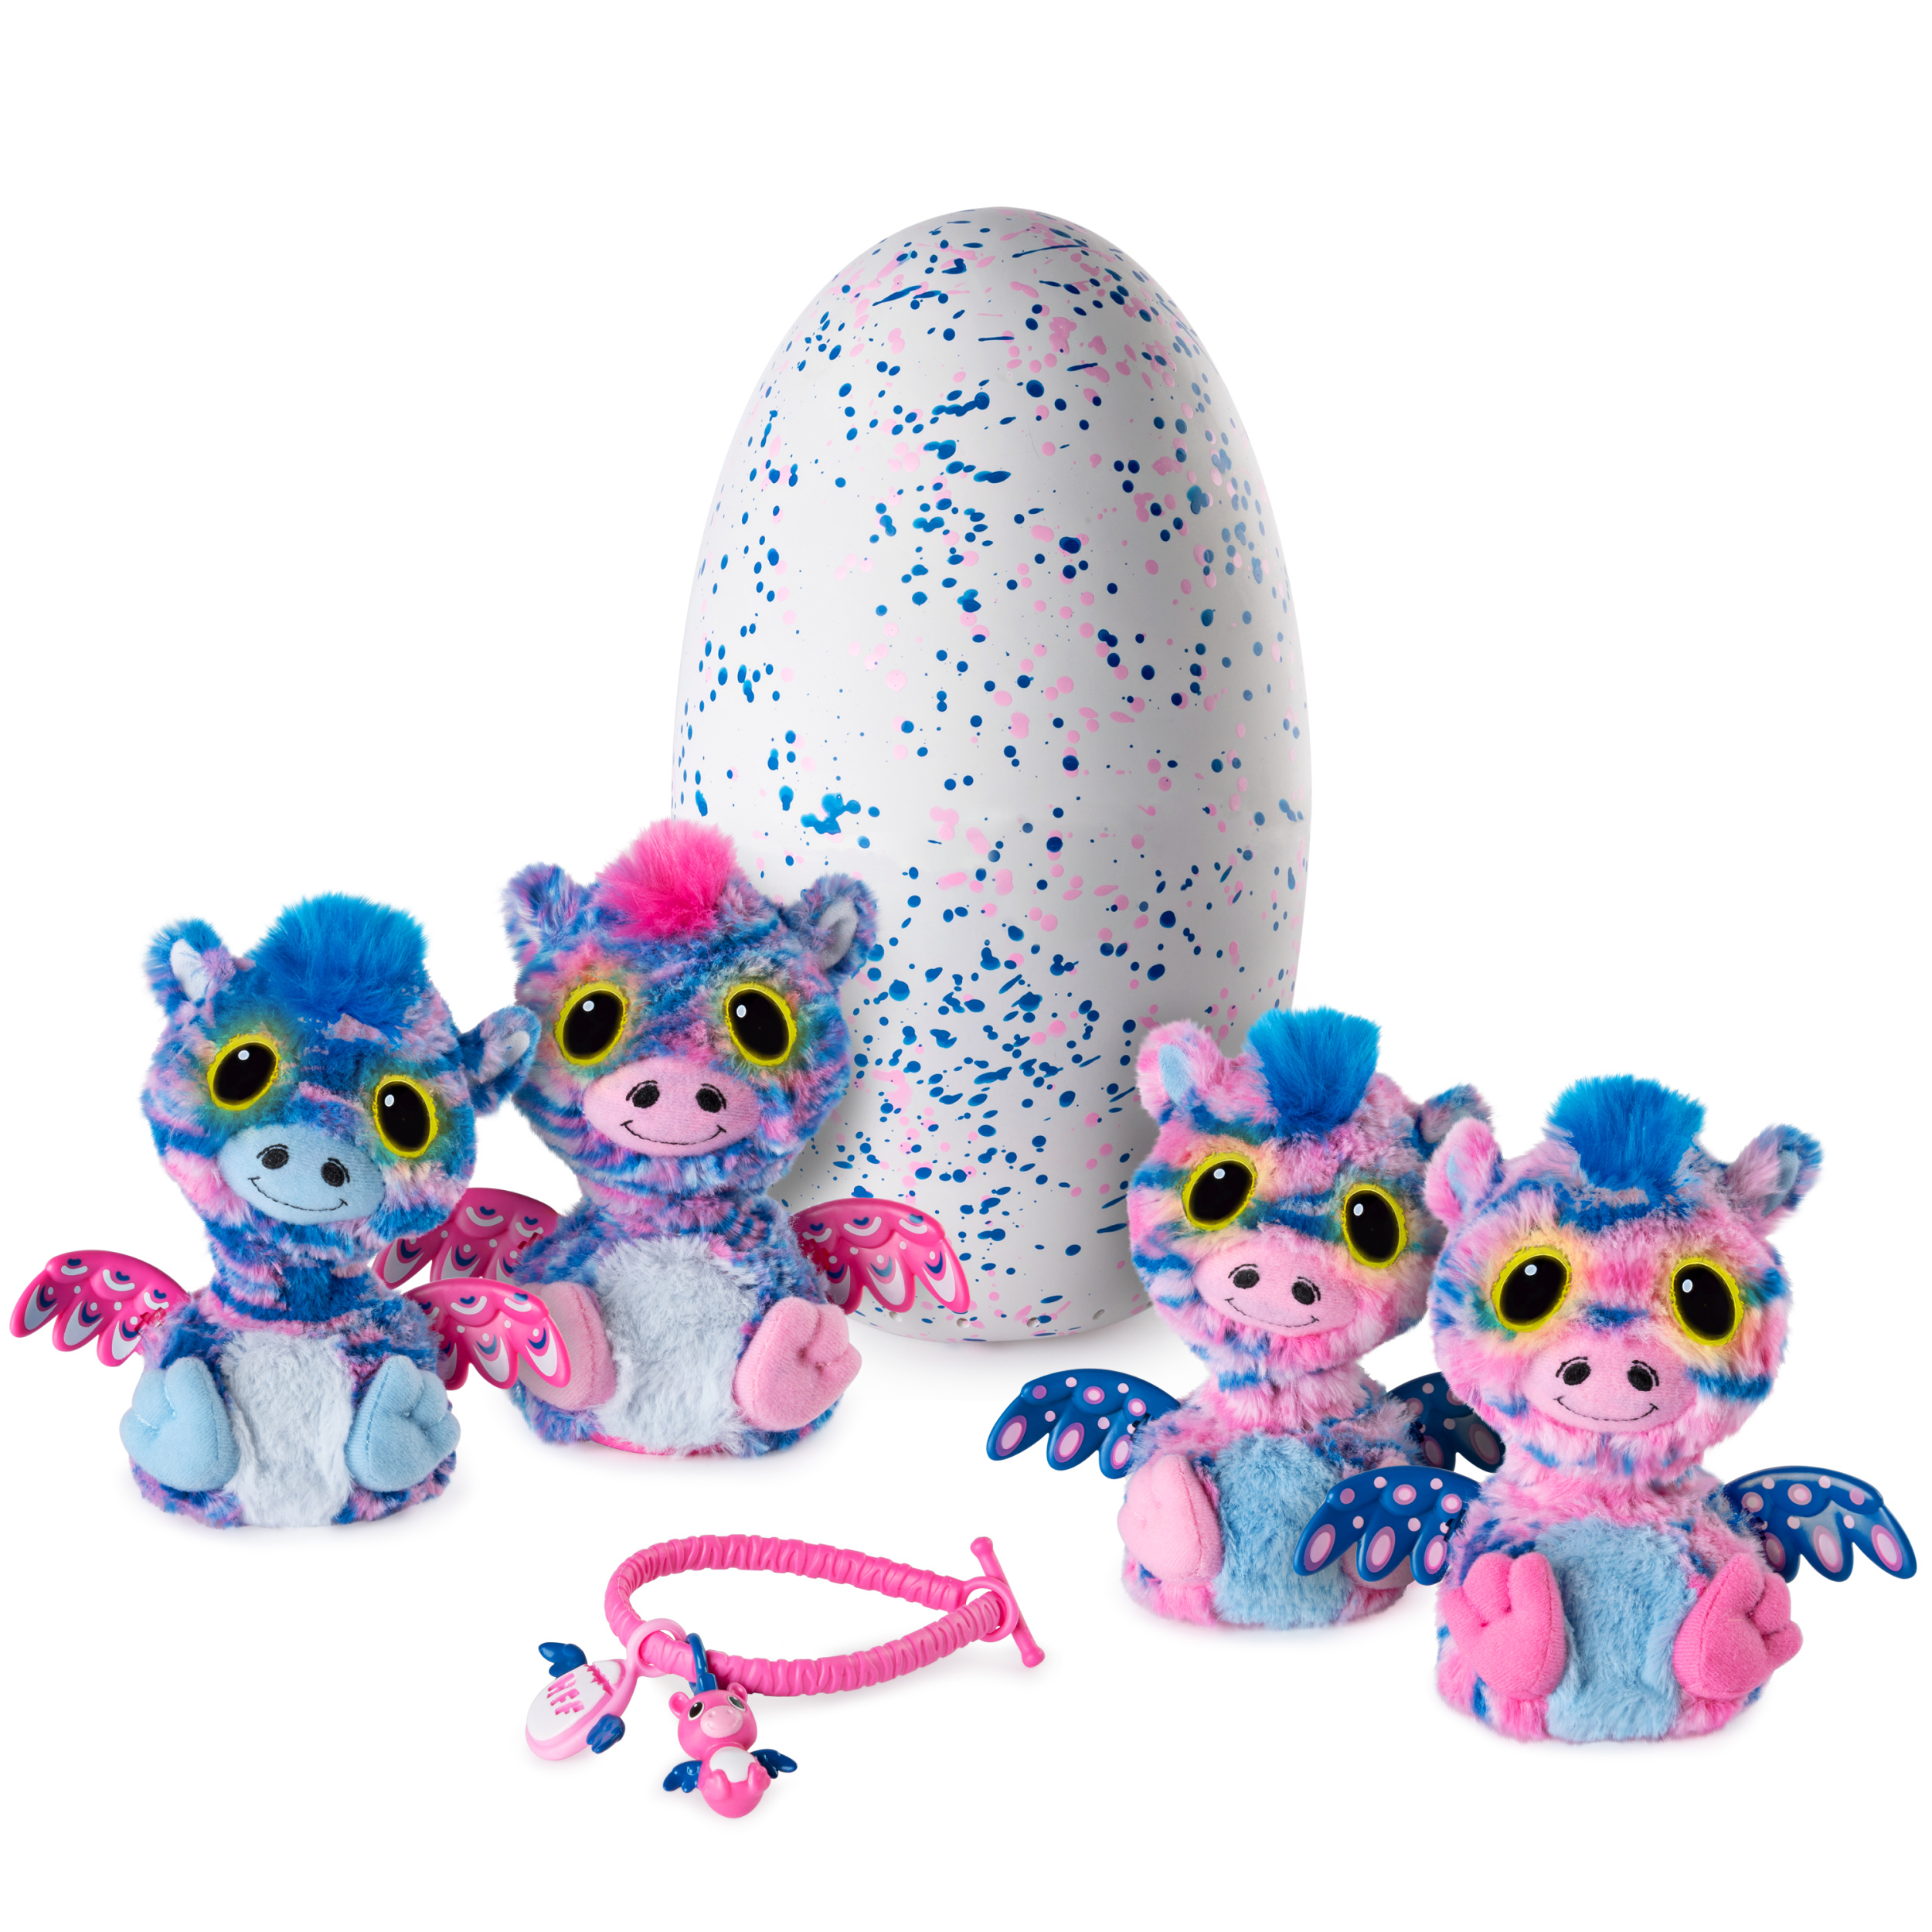 Hatchimals Surprise ‐ Zuffin ‐ Hatching Egg with Surprise Twin Interactive Hatchimal Creatures and Bracelet Accessory by Spin Master, Available Exclusively at Walmart